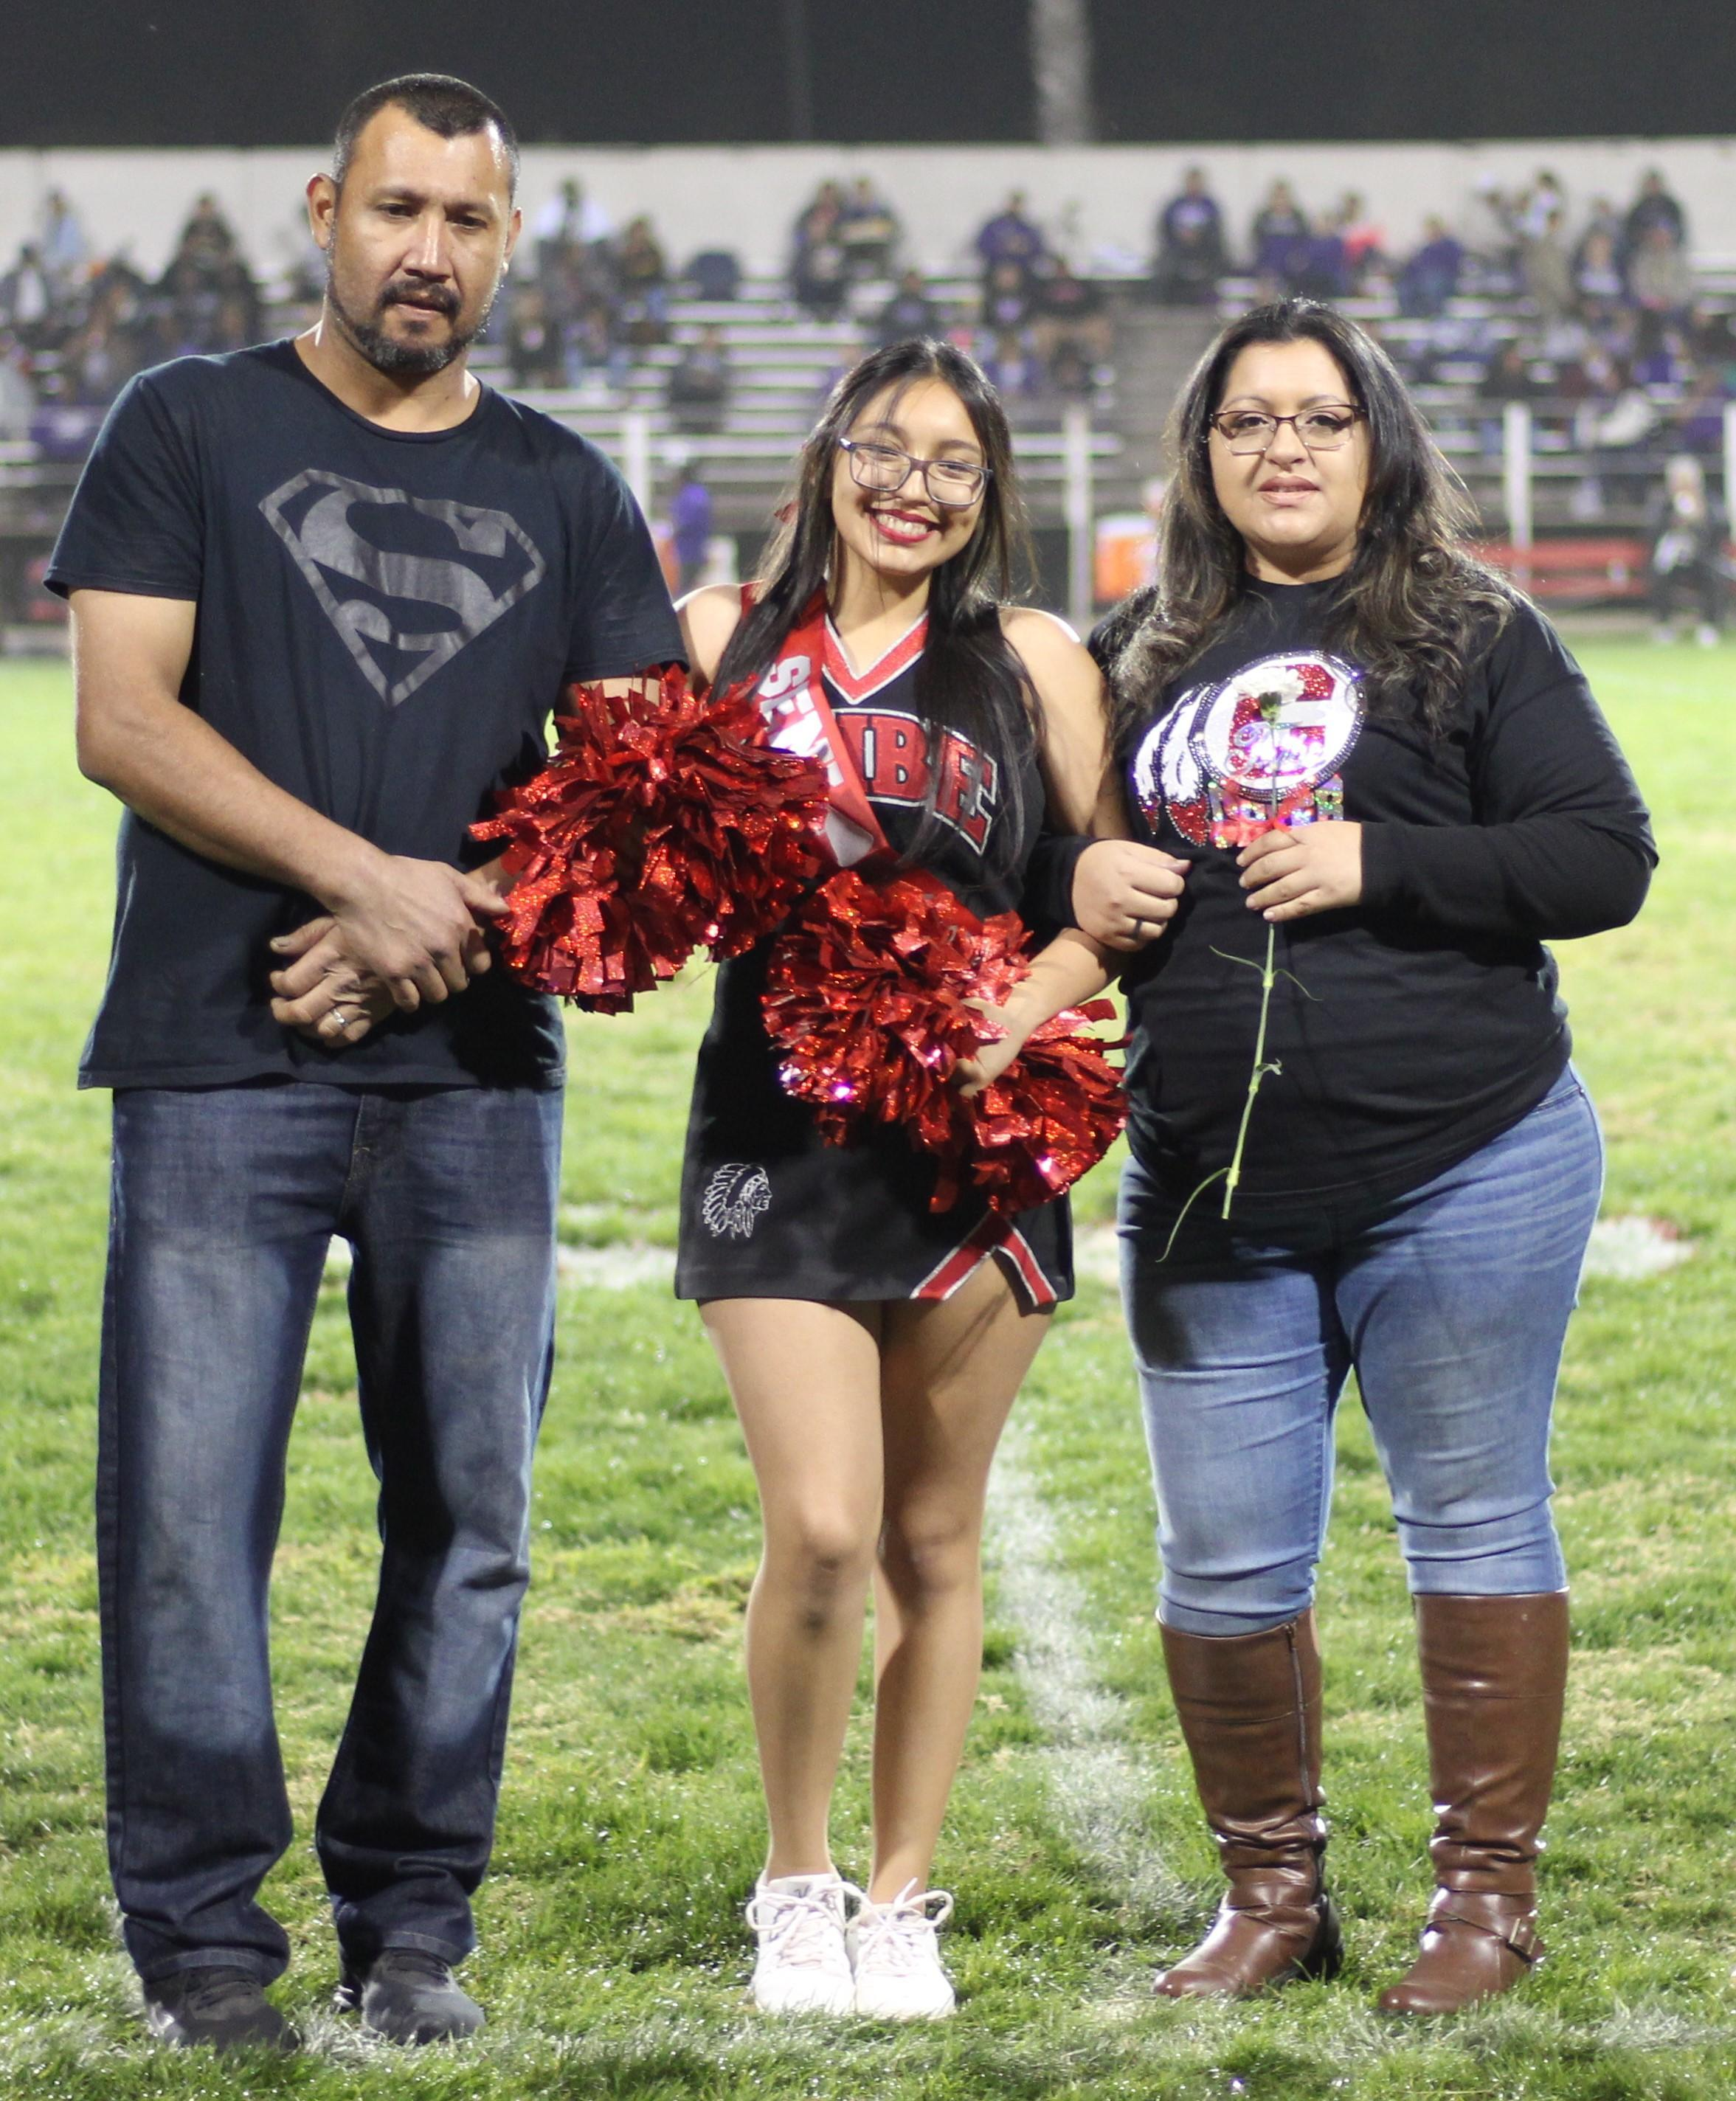 Senior cheerleader Angel Montez and her escorts.